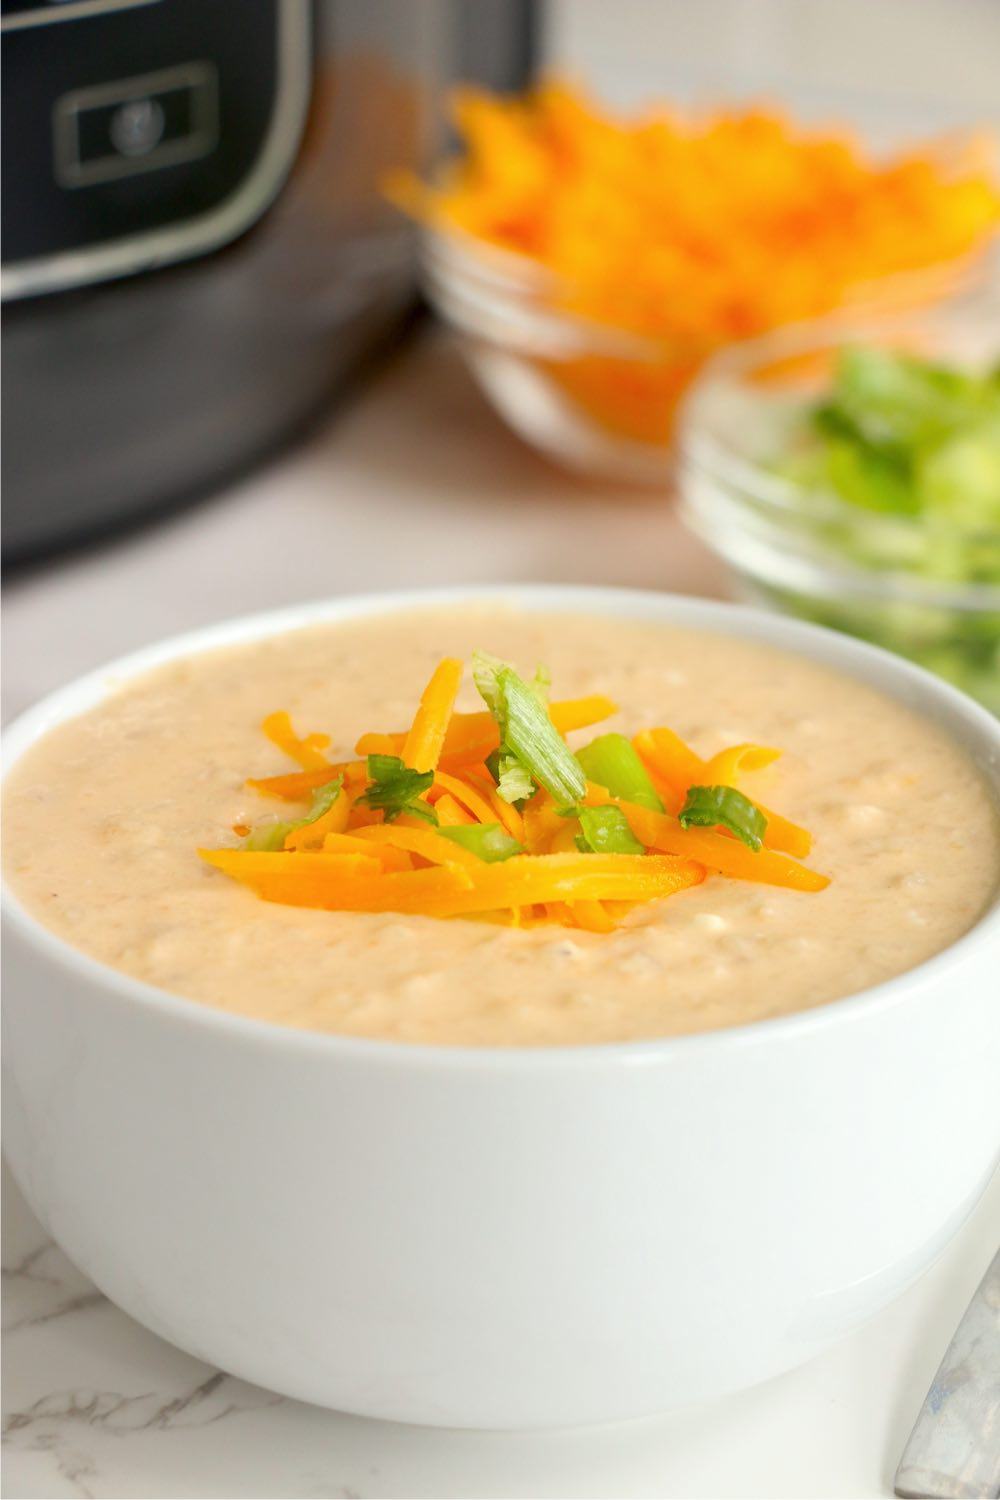 bowl of cheesy cauliflower soup garnished with shredded cheese and green onions